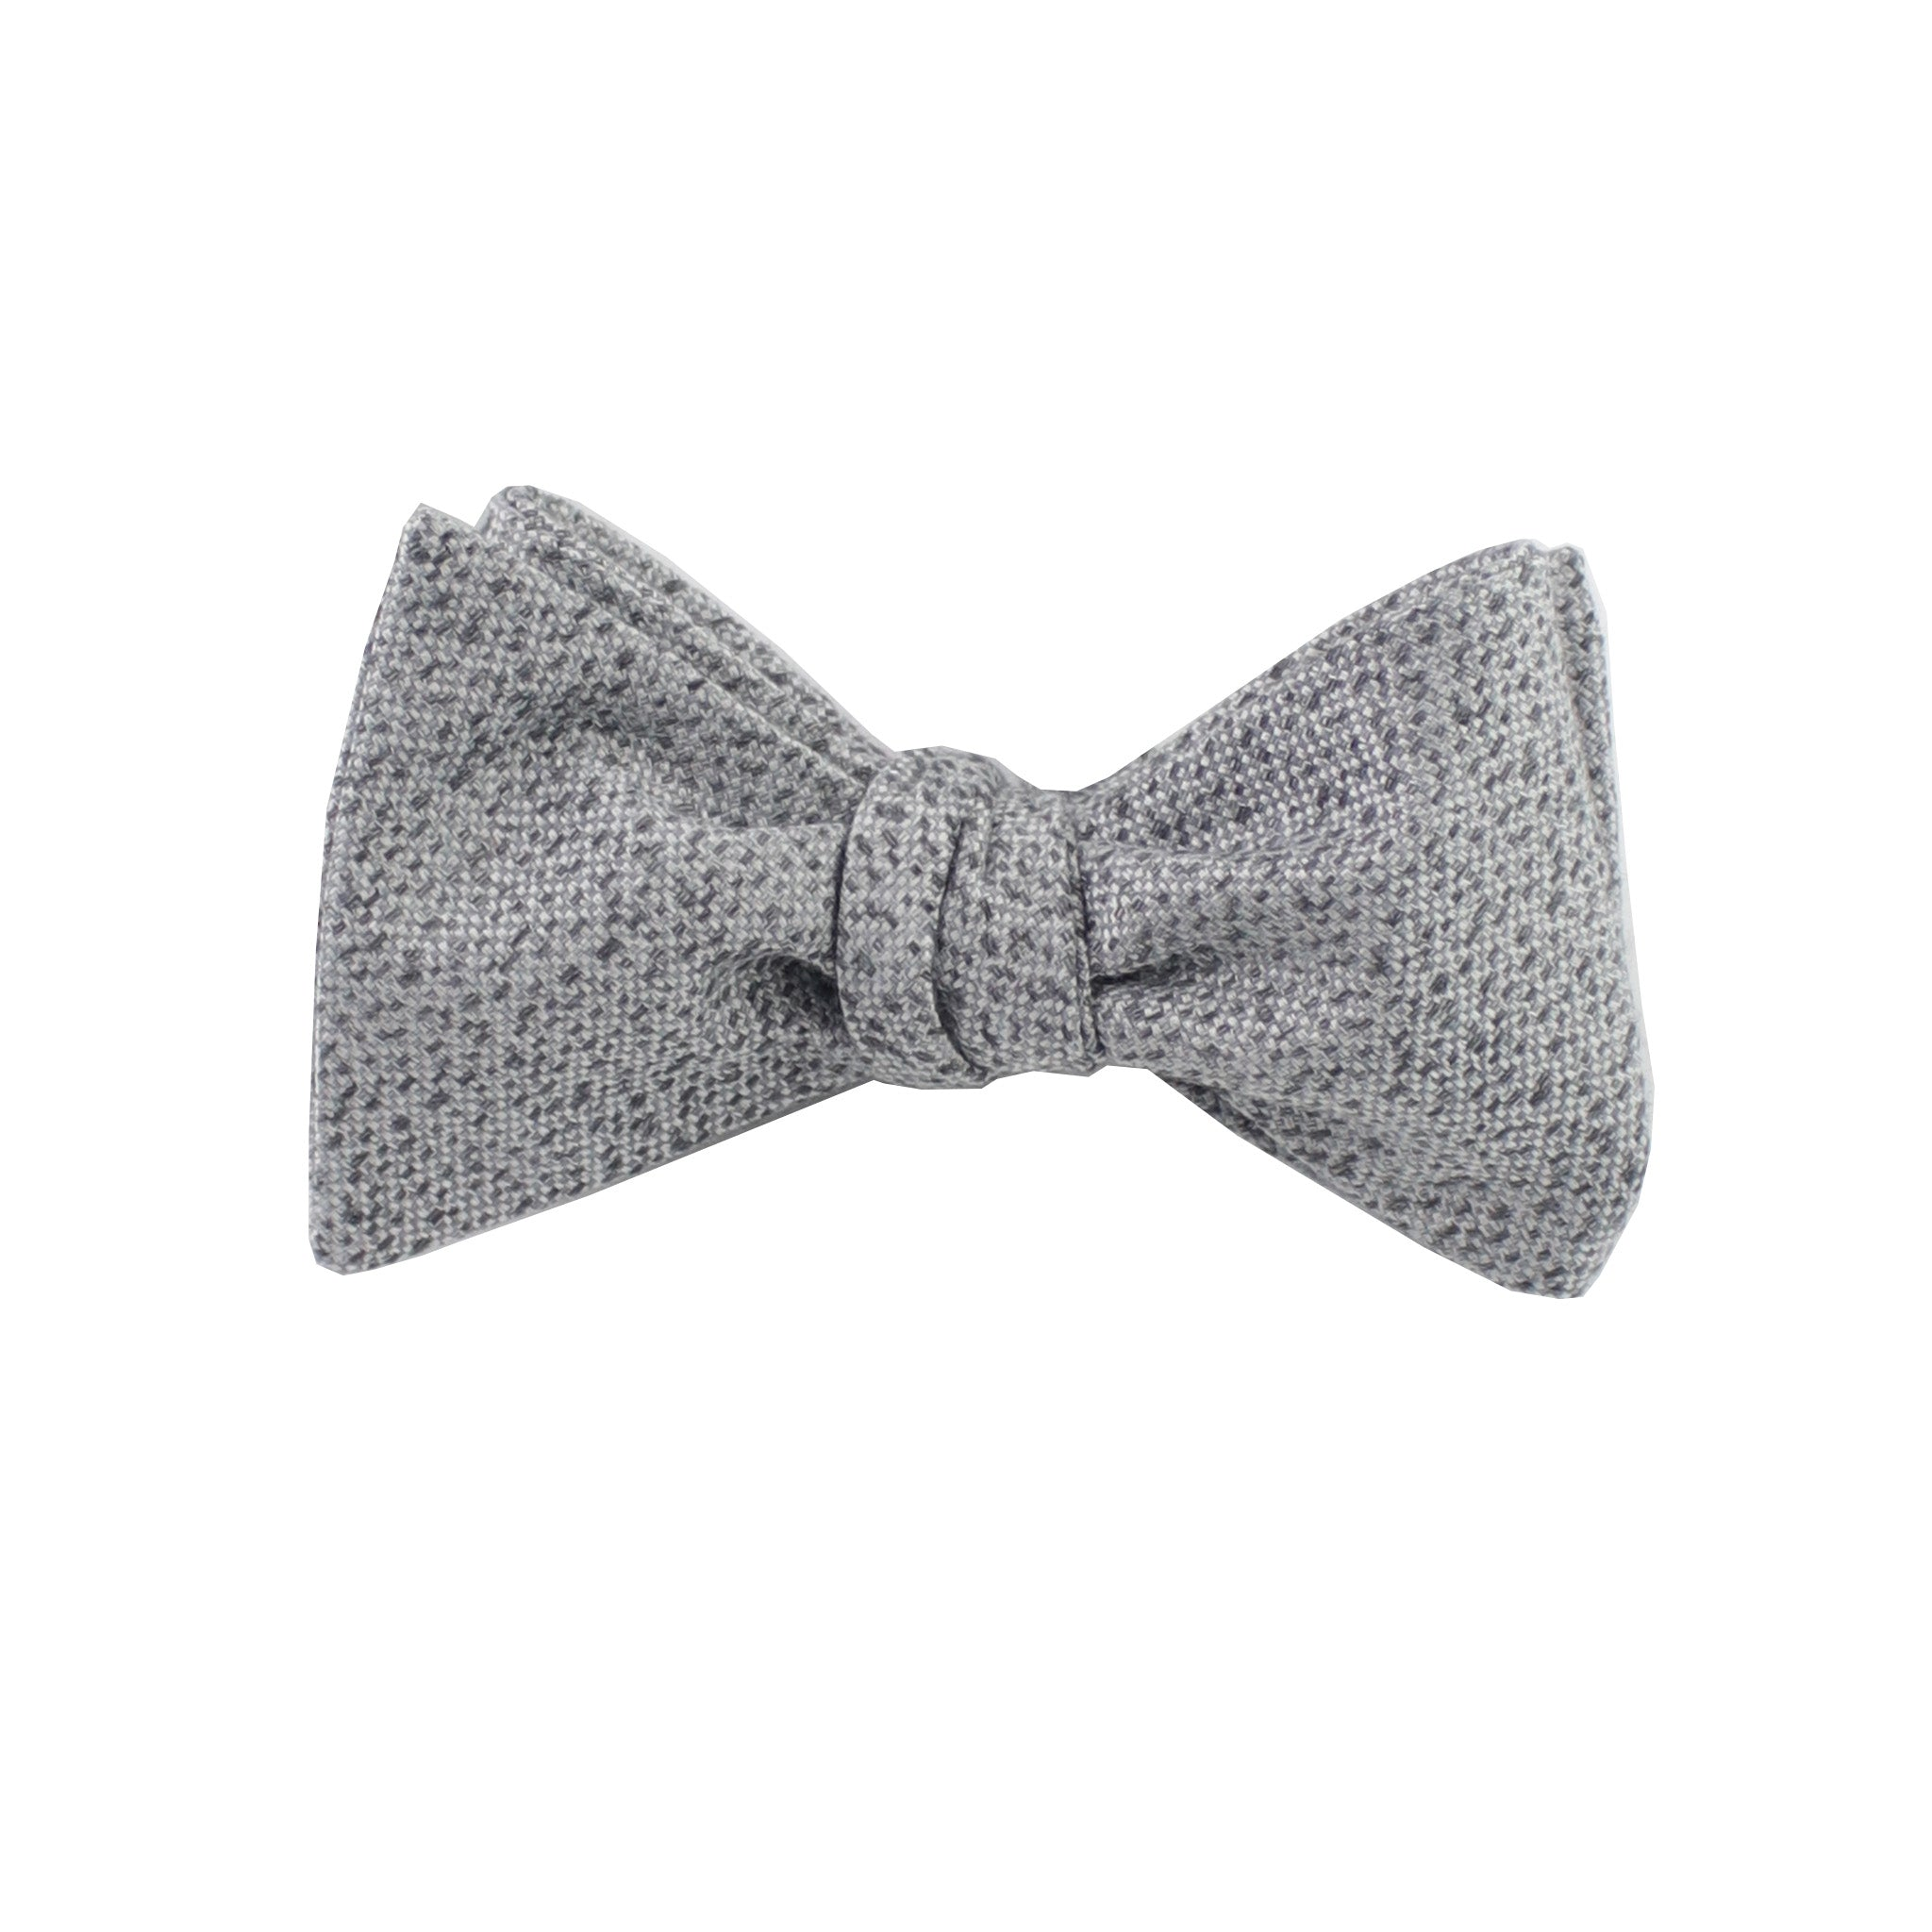 Silver & Charcoal Heather Self Tie Bow Tie from DIBI